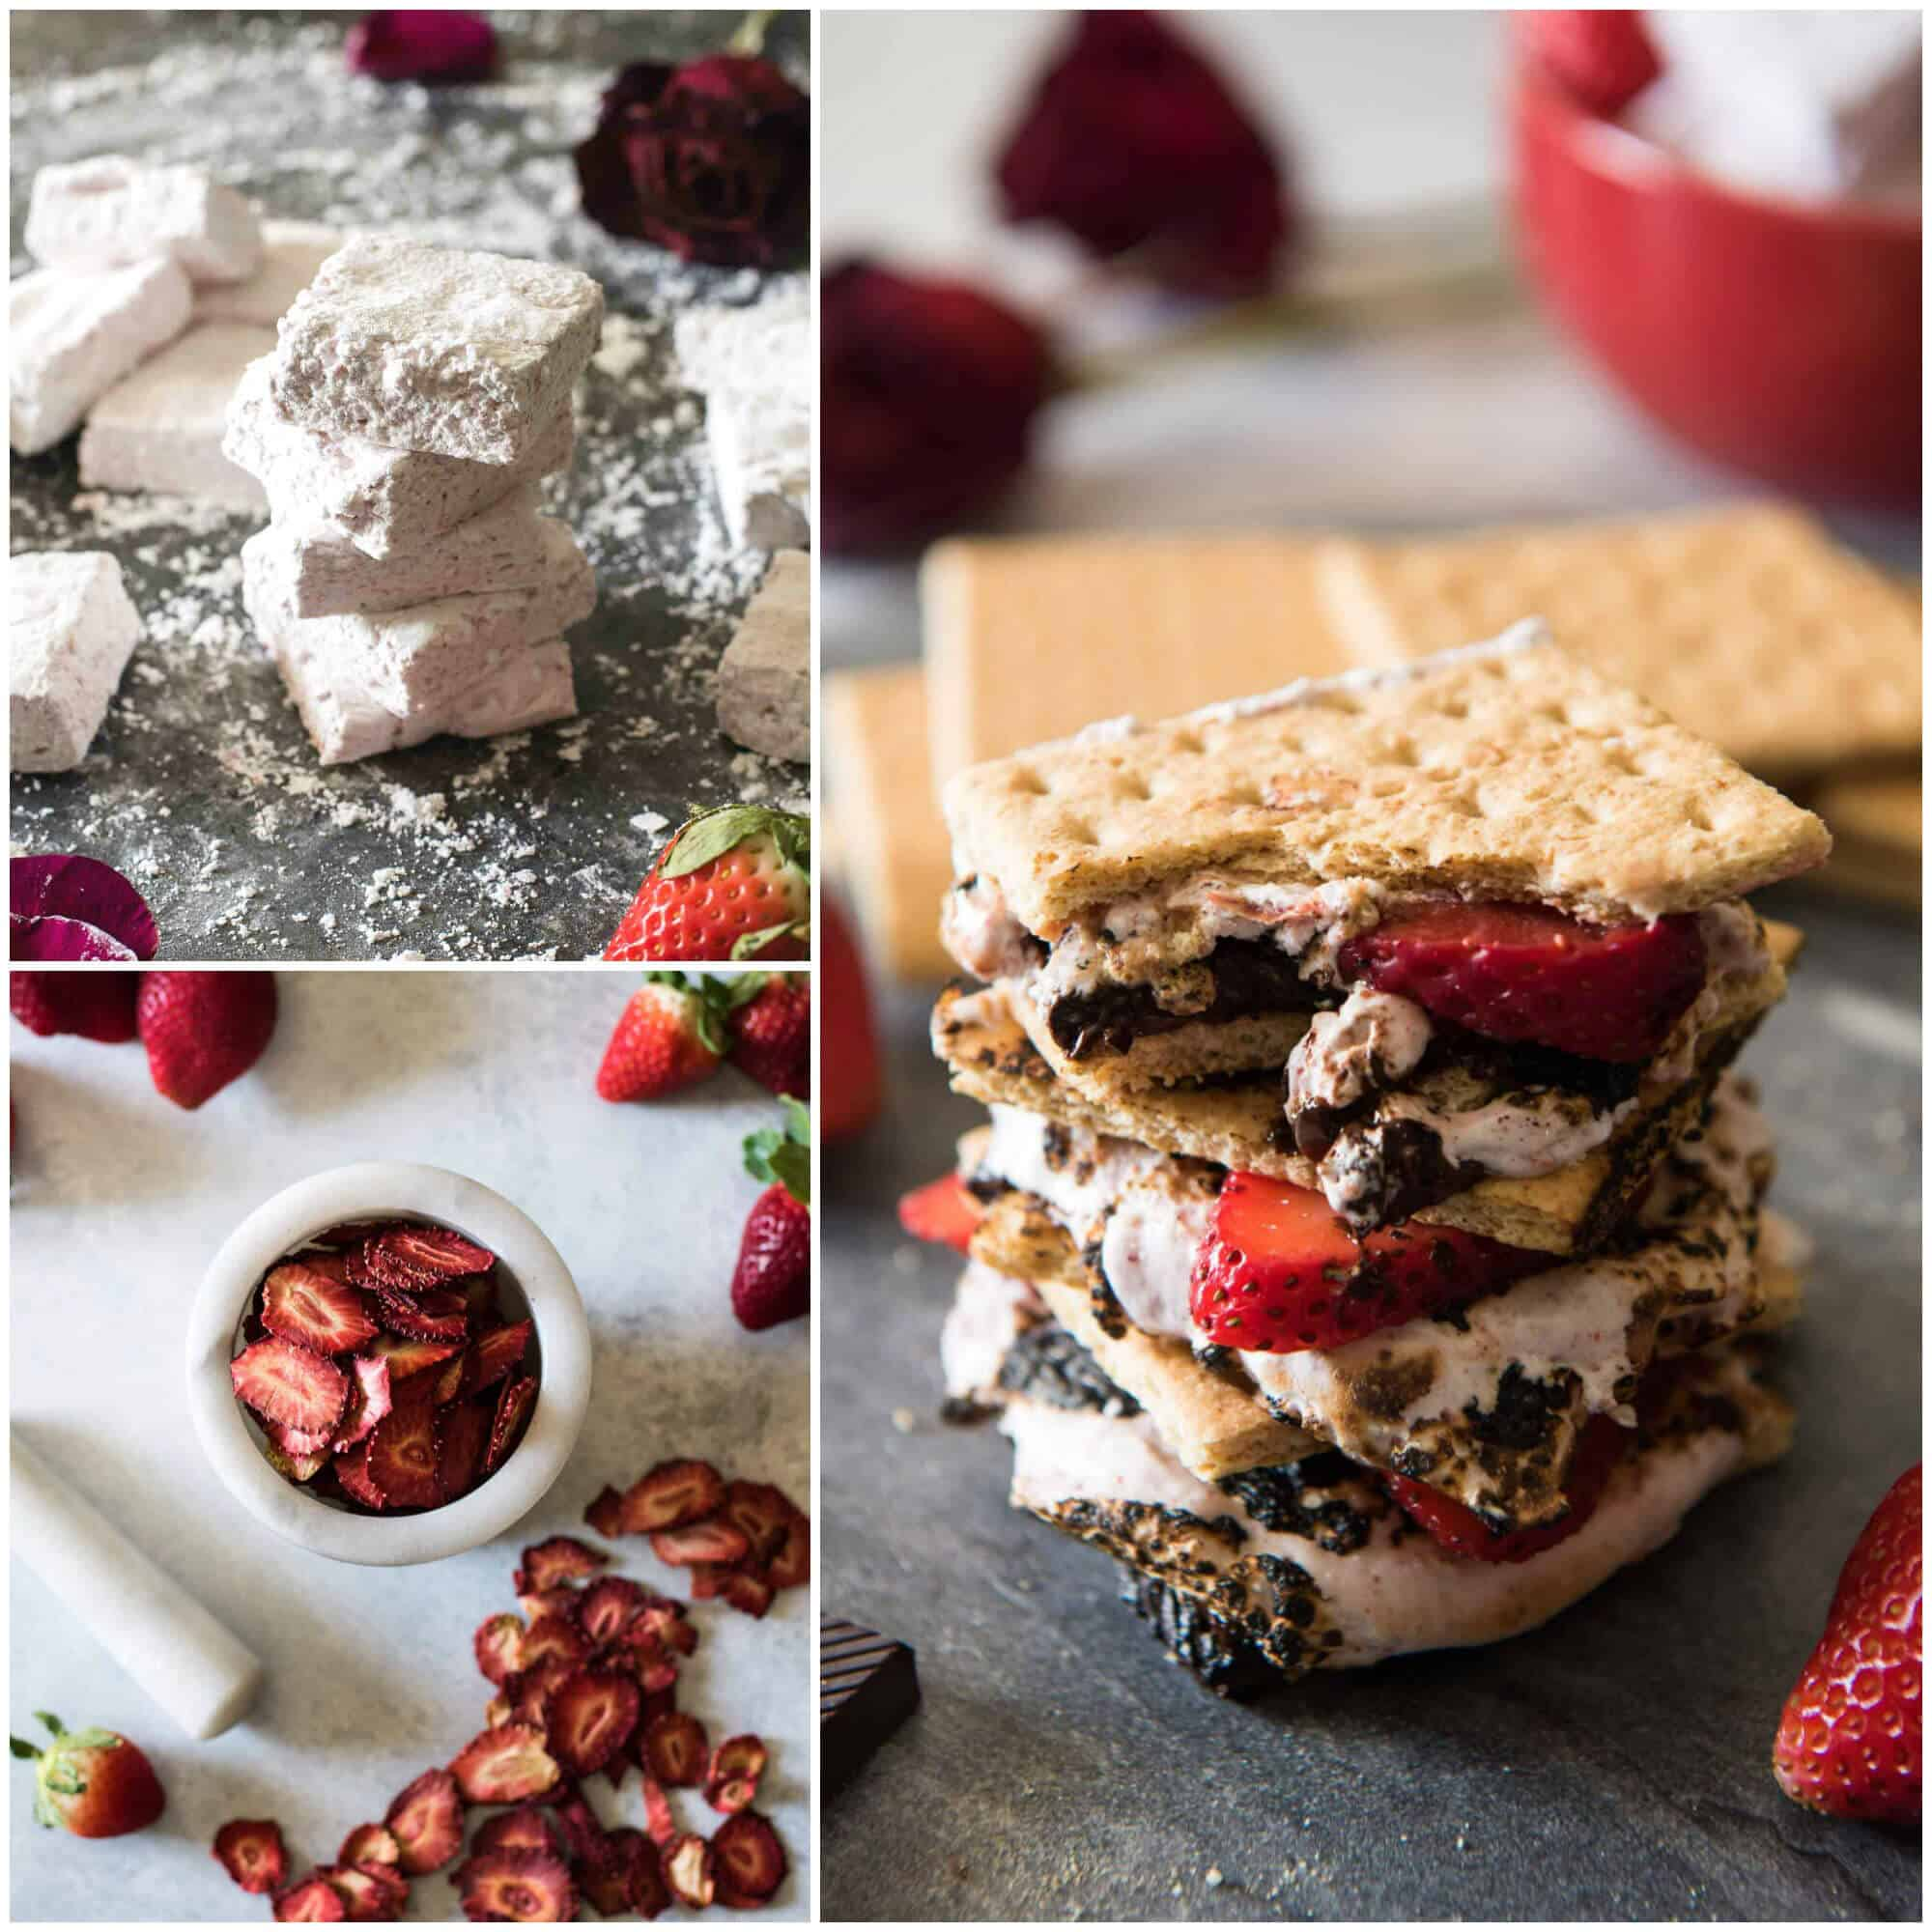 Strawberry S'mores - because winter s'mores are totally a thing! Take these classic treats up a notch by replacing the store-bought standard with homemade strawberry marshmallows, made from dehydrated Florida strawberries!